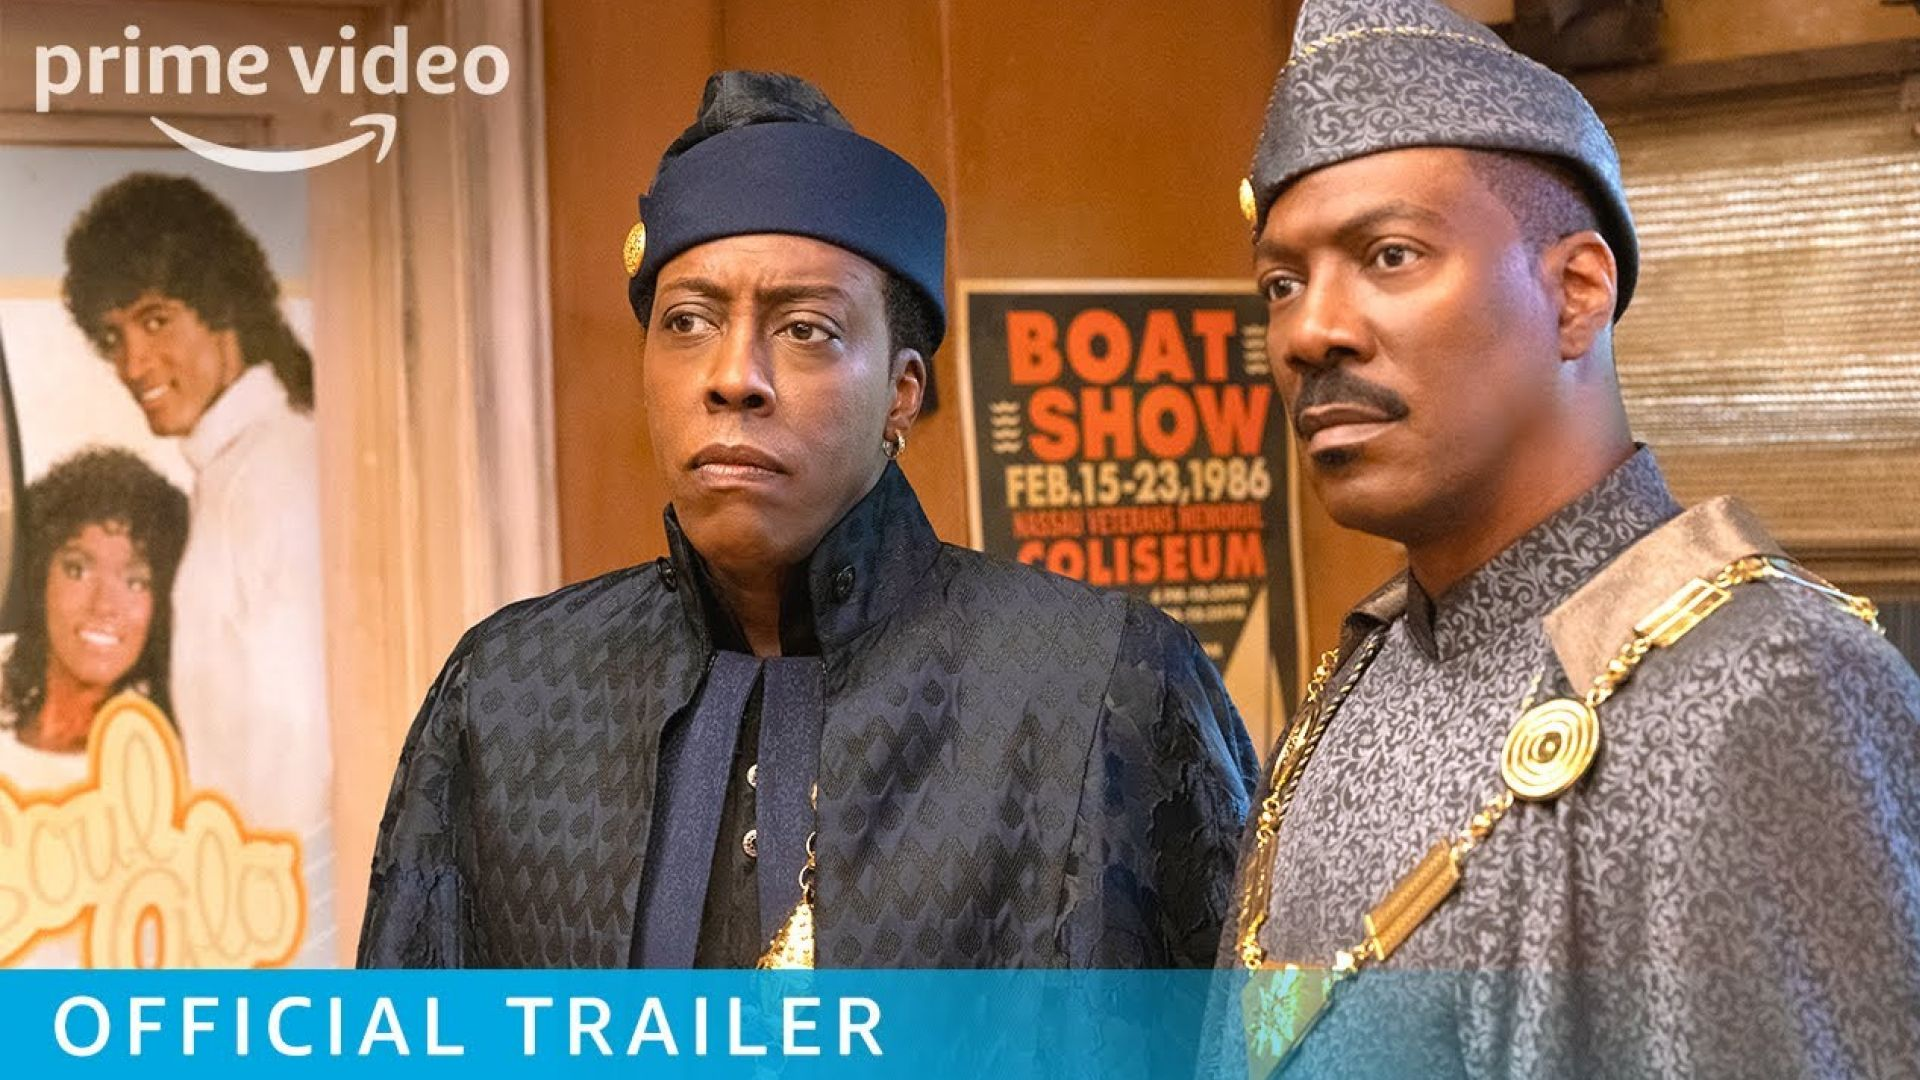 Coming 2 America Trailer • Coming to Amazon Prime on March